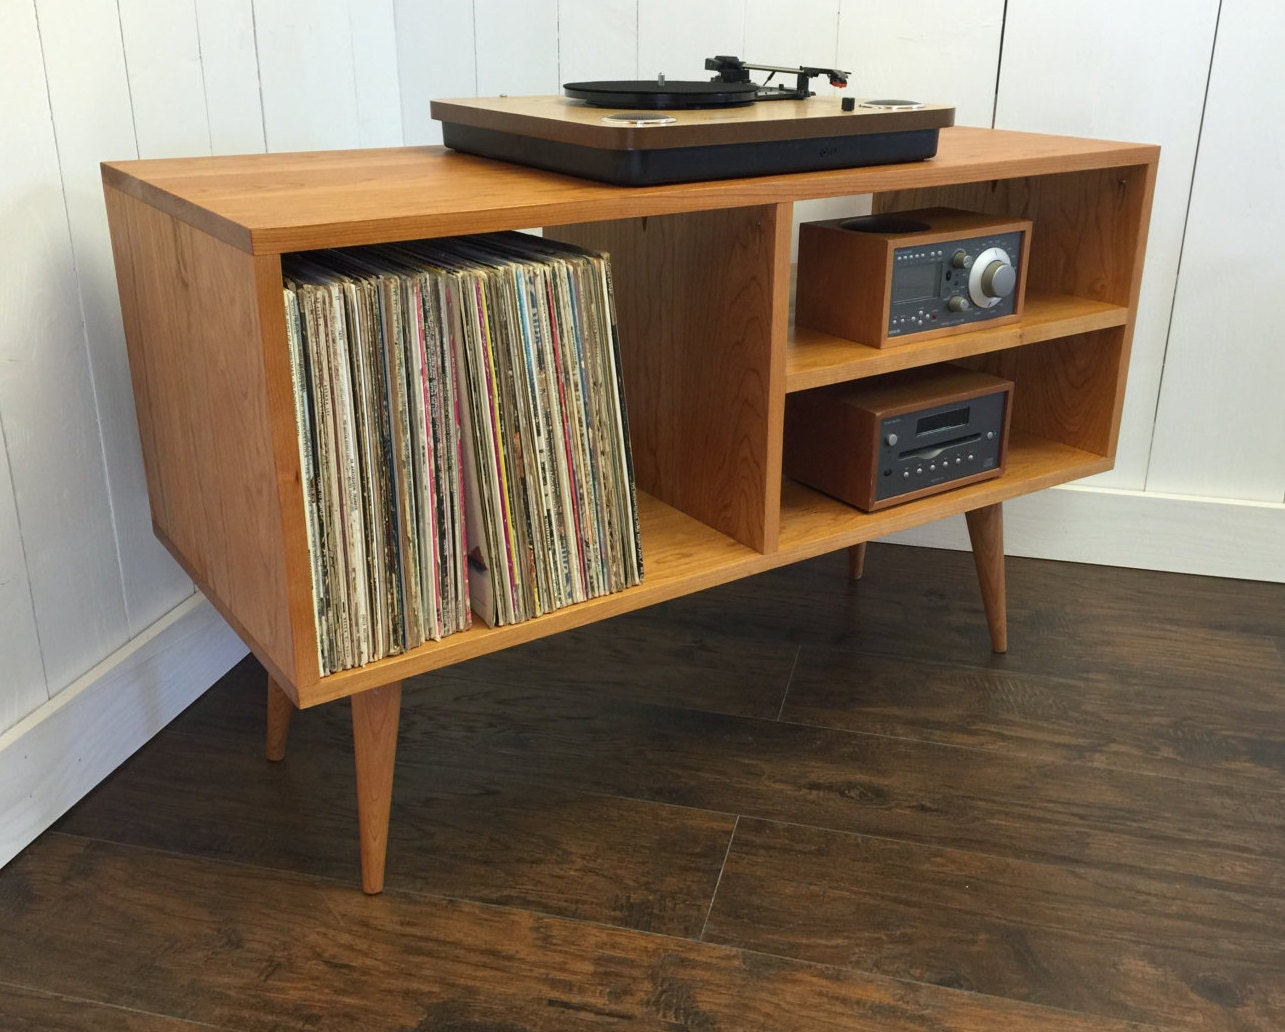 New Mid Century Modern Record Player Console Turntable ~ Oak Sofa Table With Storage